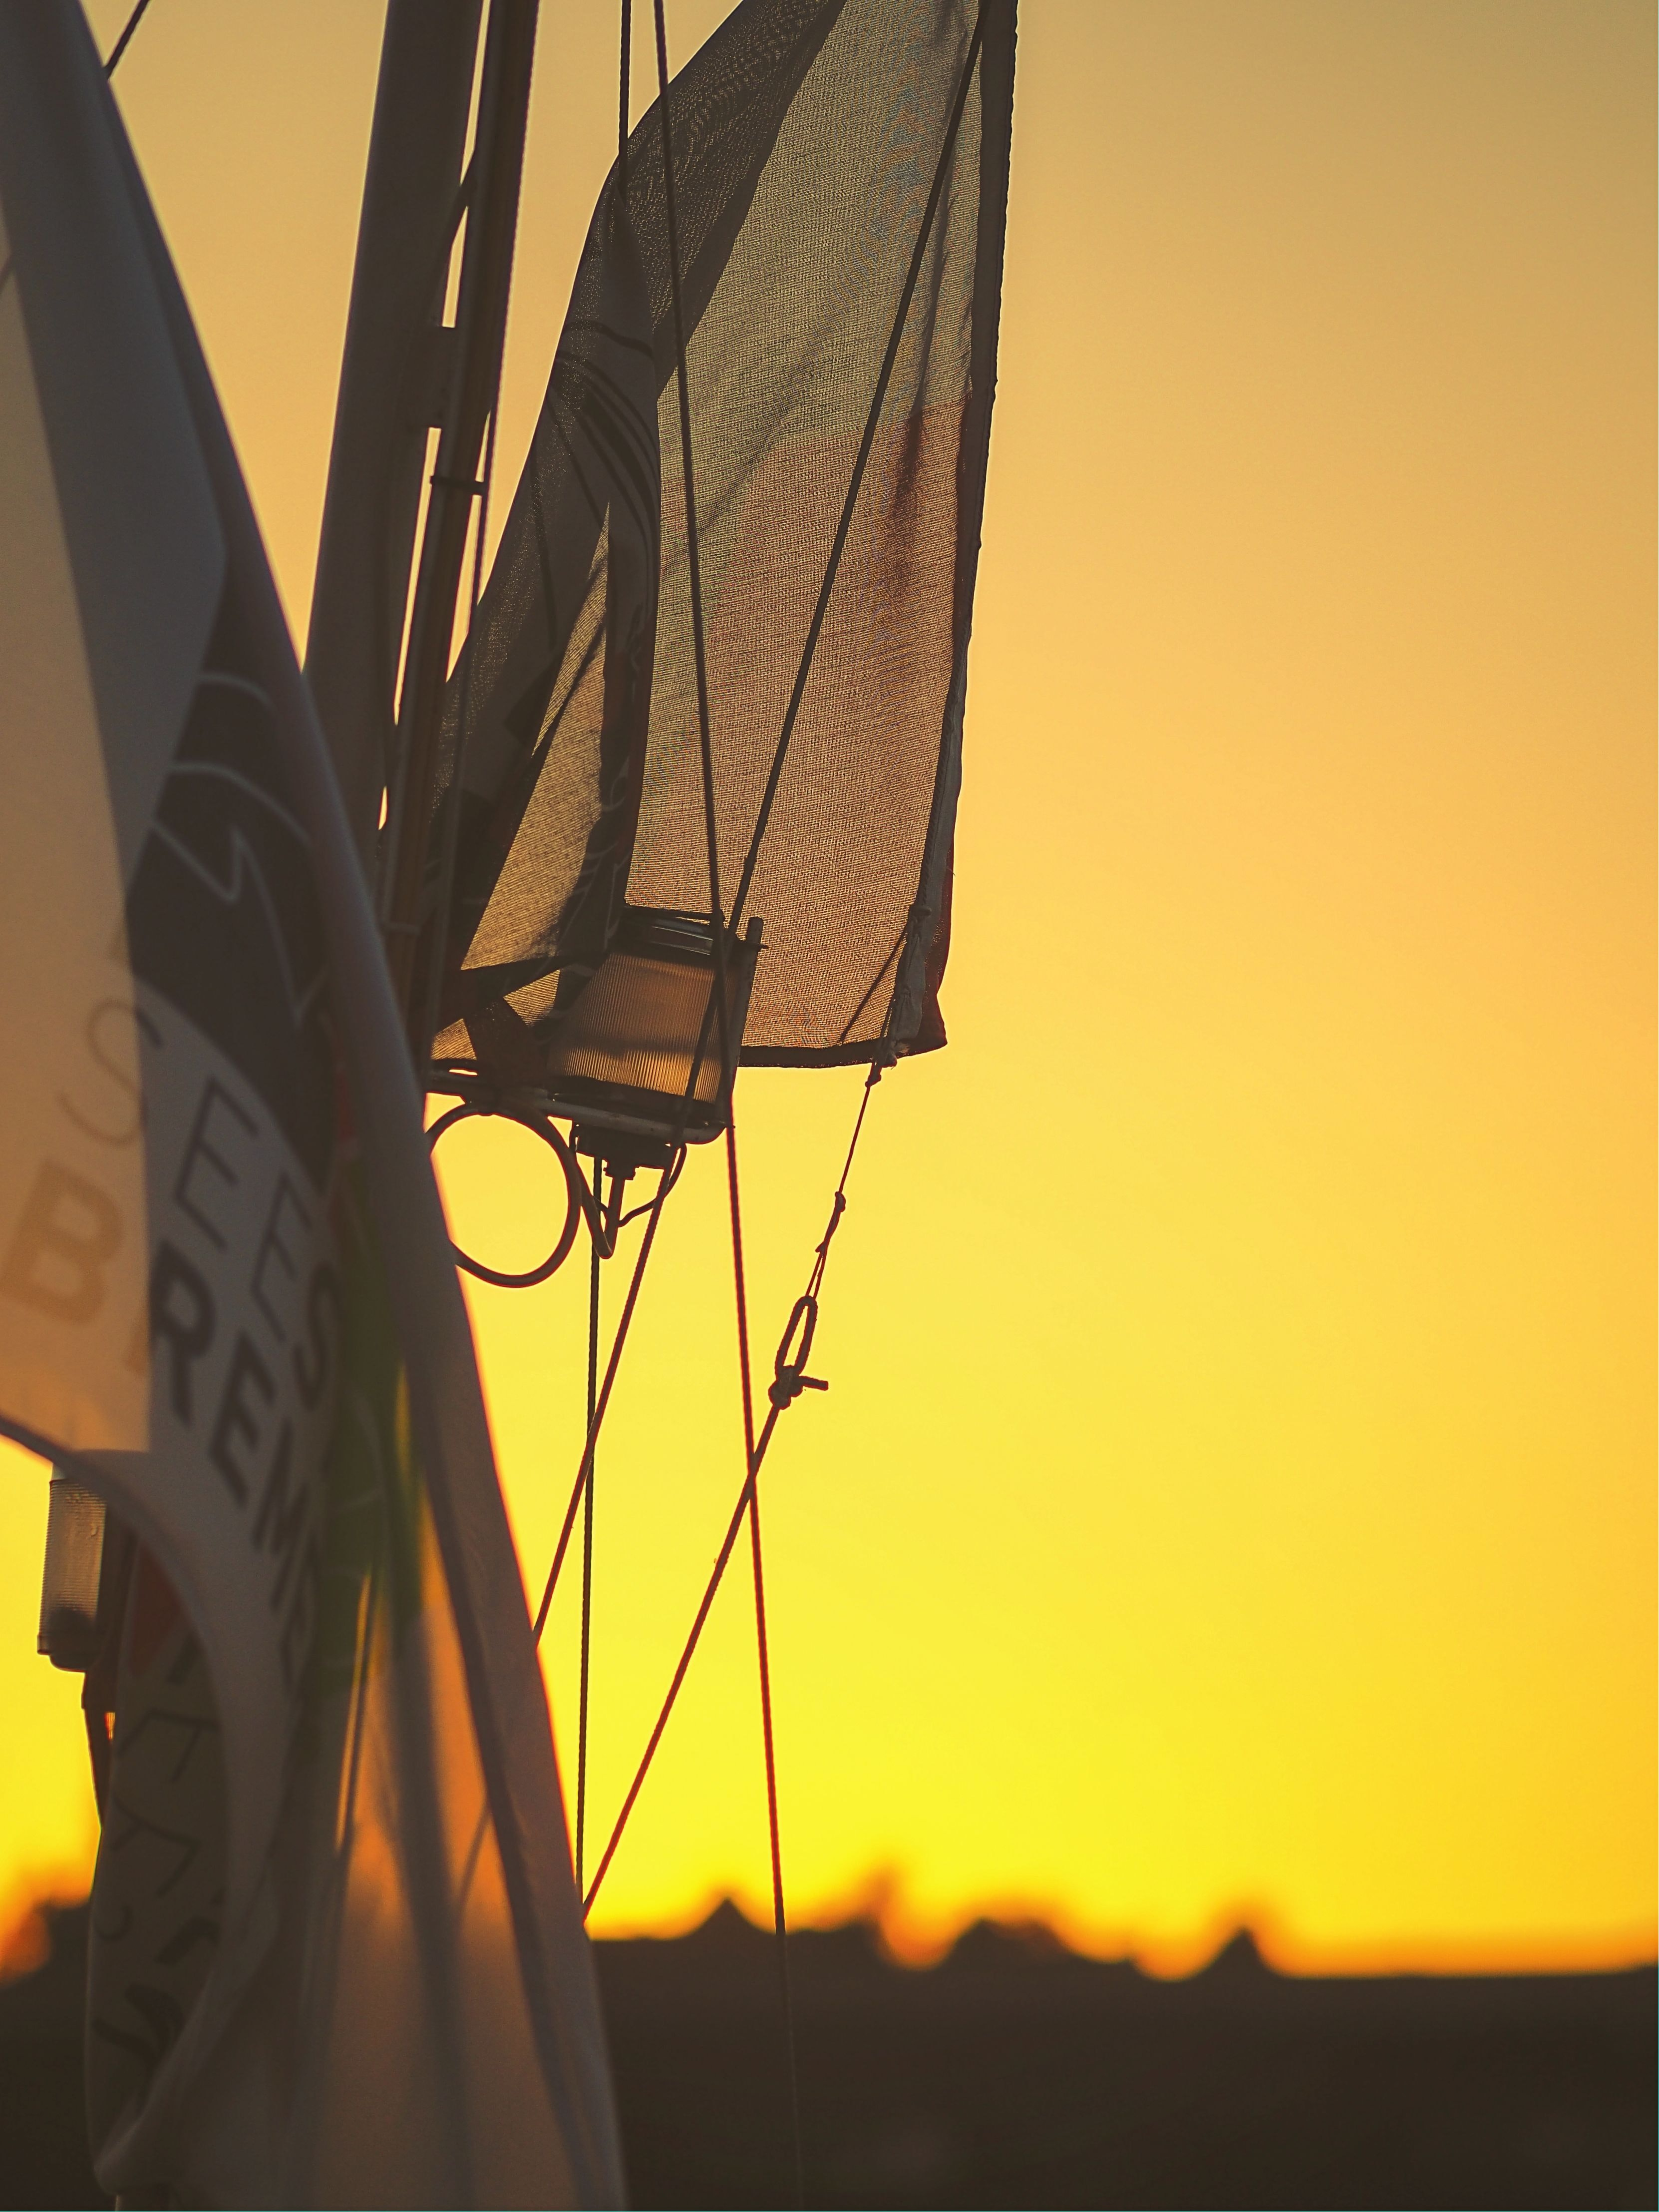 gray and black sailboat during sunset